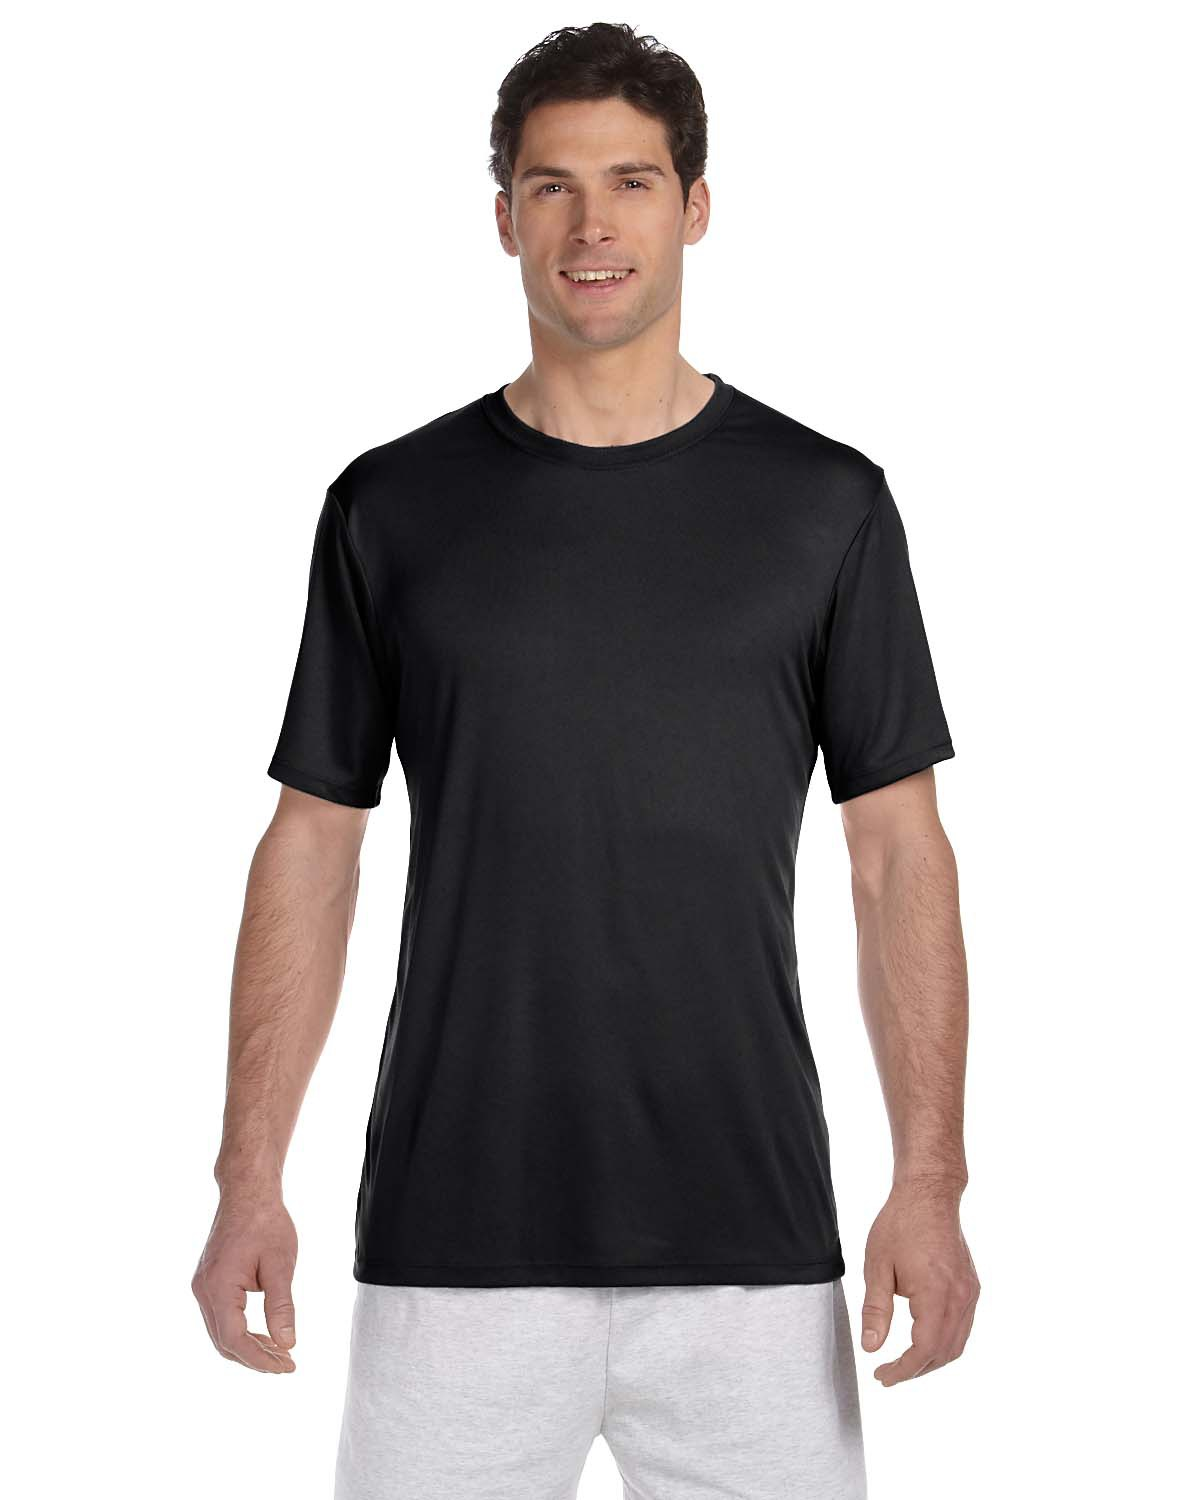 Hanes 4820 - Cool Dri Short Sleeve Performance T-Shirt